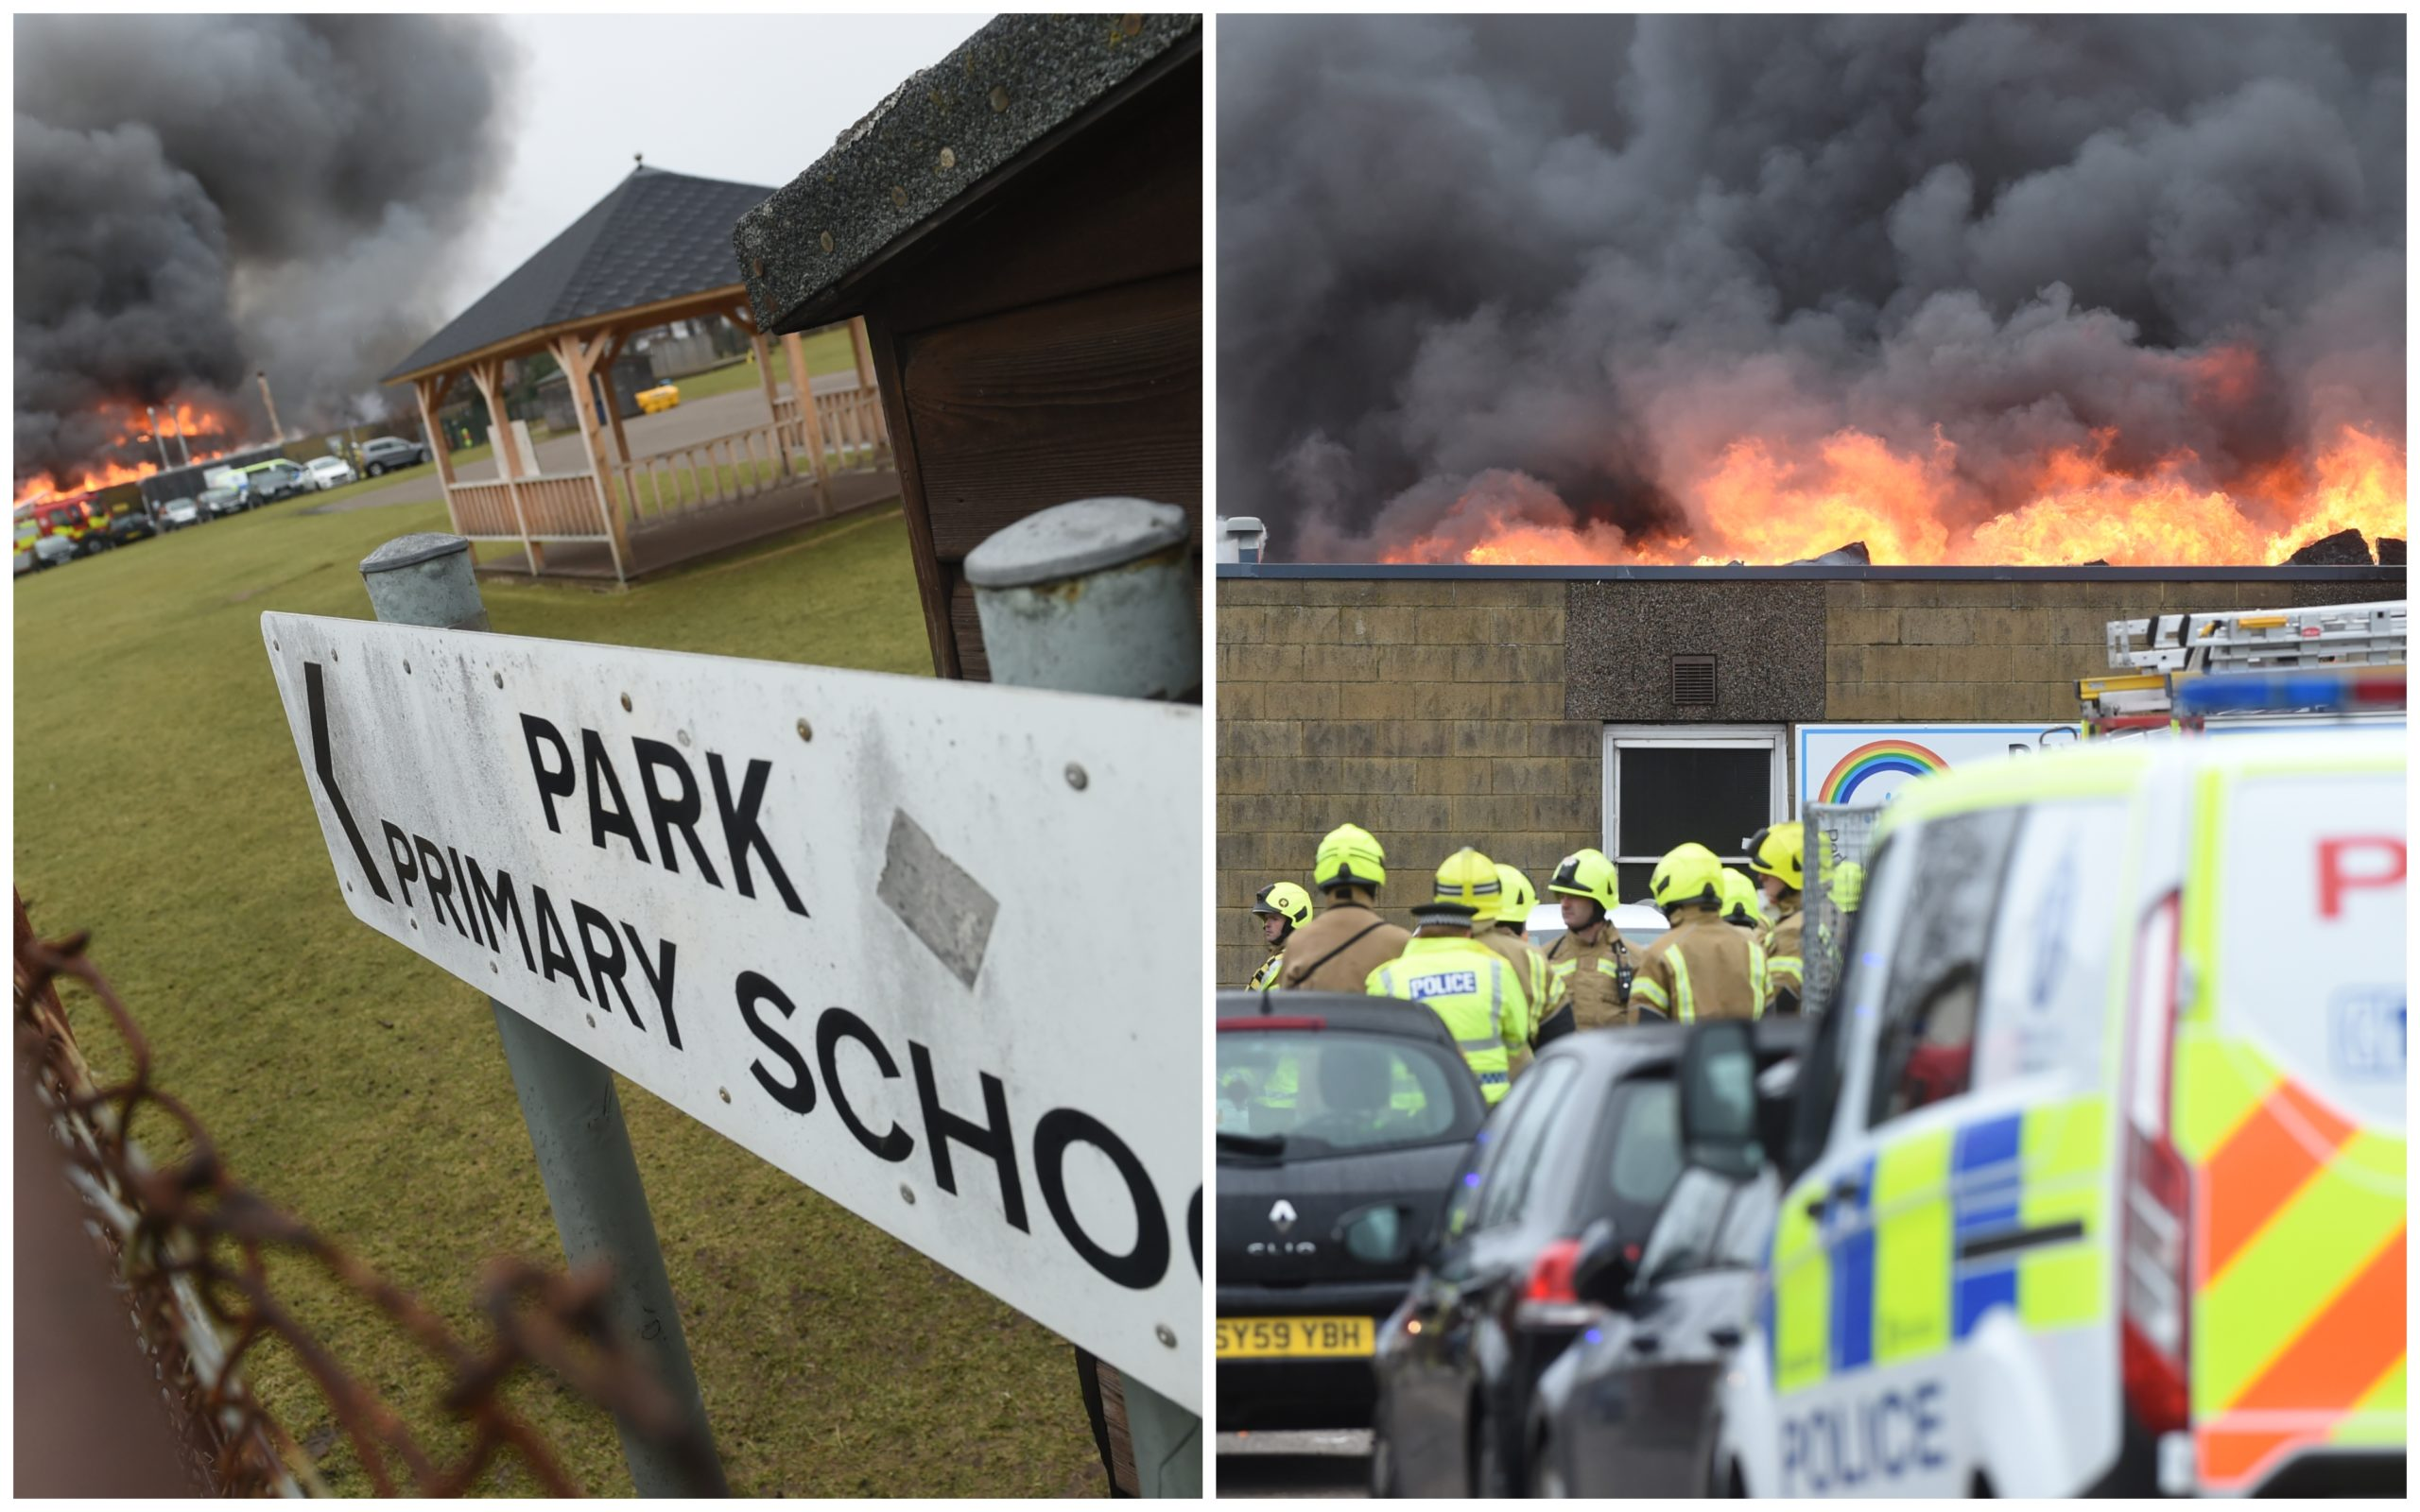 The fire broke out around 10.10am on February 24. Pictures by Sandy McCook